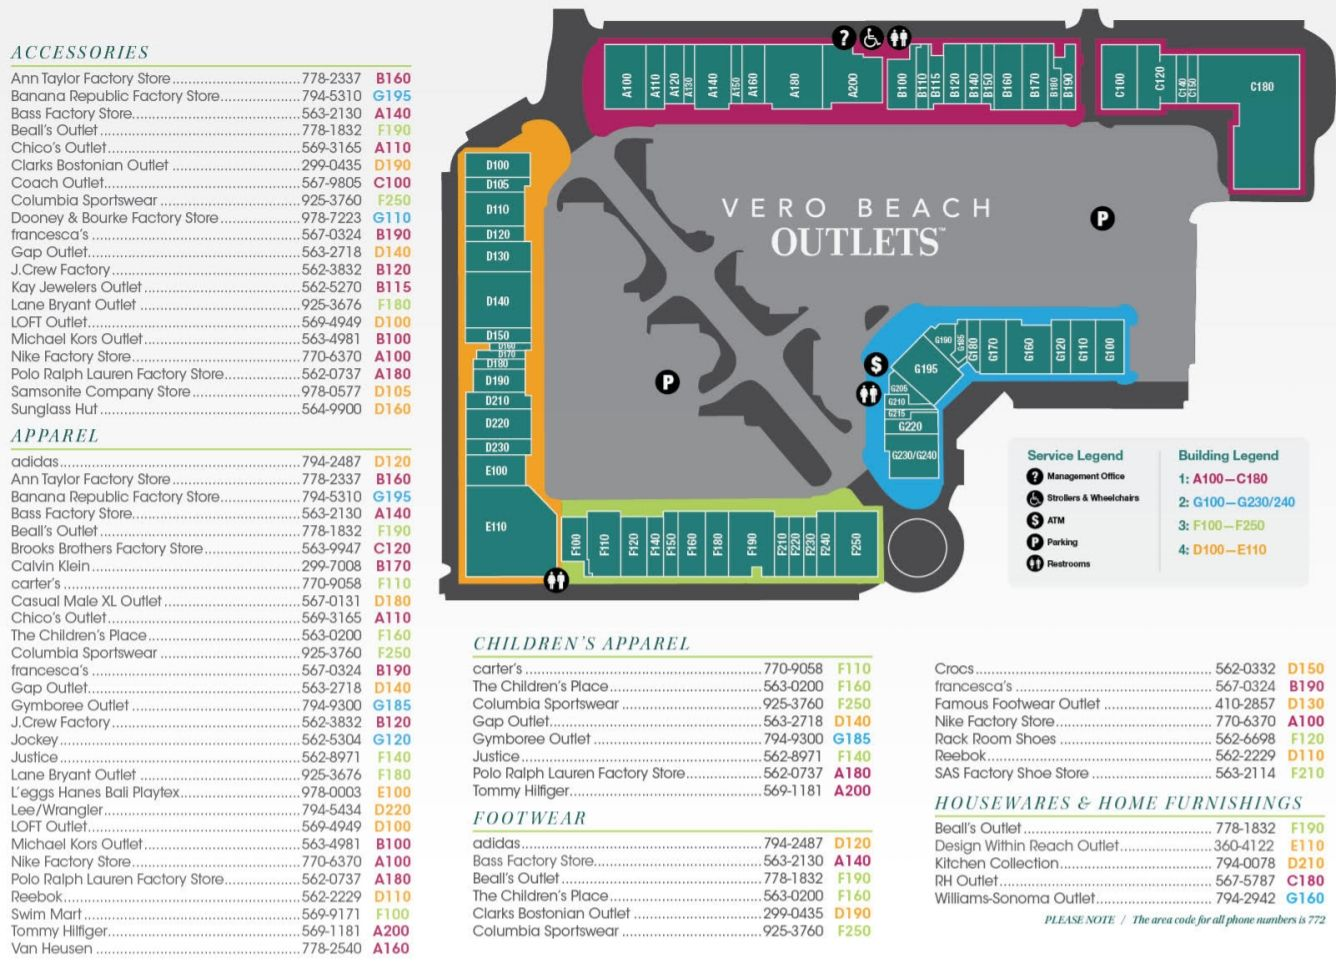 Kittery Outlets Map on old orchard beach map, merrimack college map, university of new hampshire map, perkins cove map, maine map, marginal way map, boston map, water country map, york's wild kingdom map,